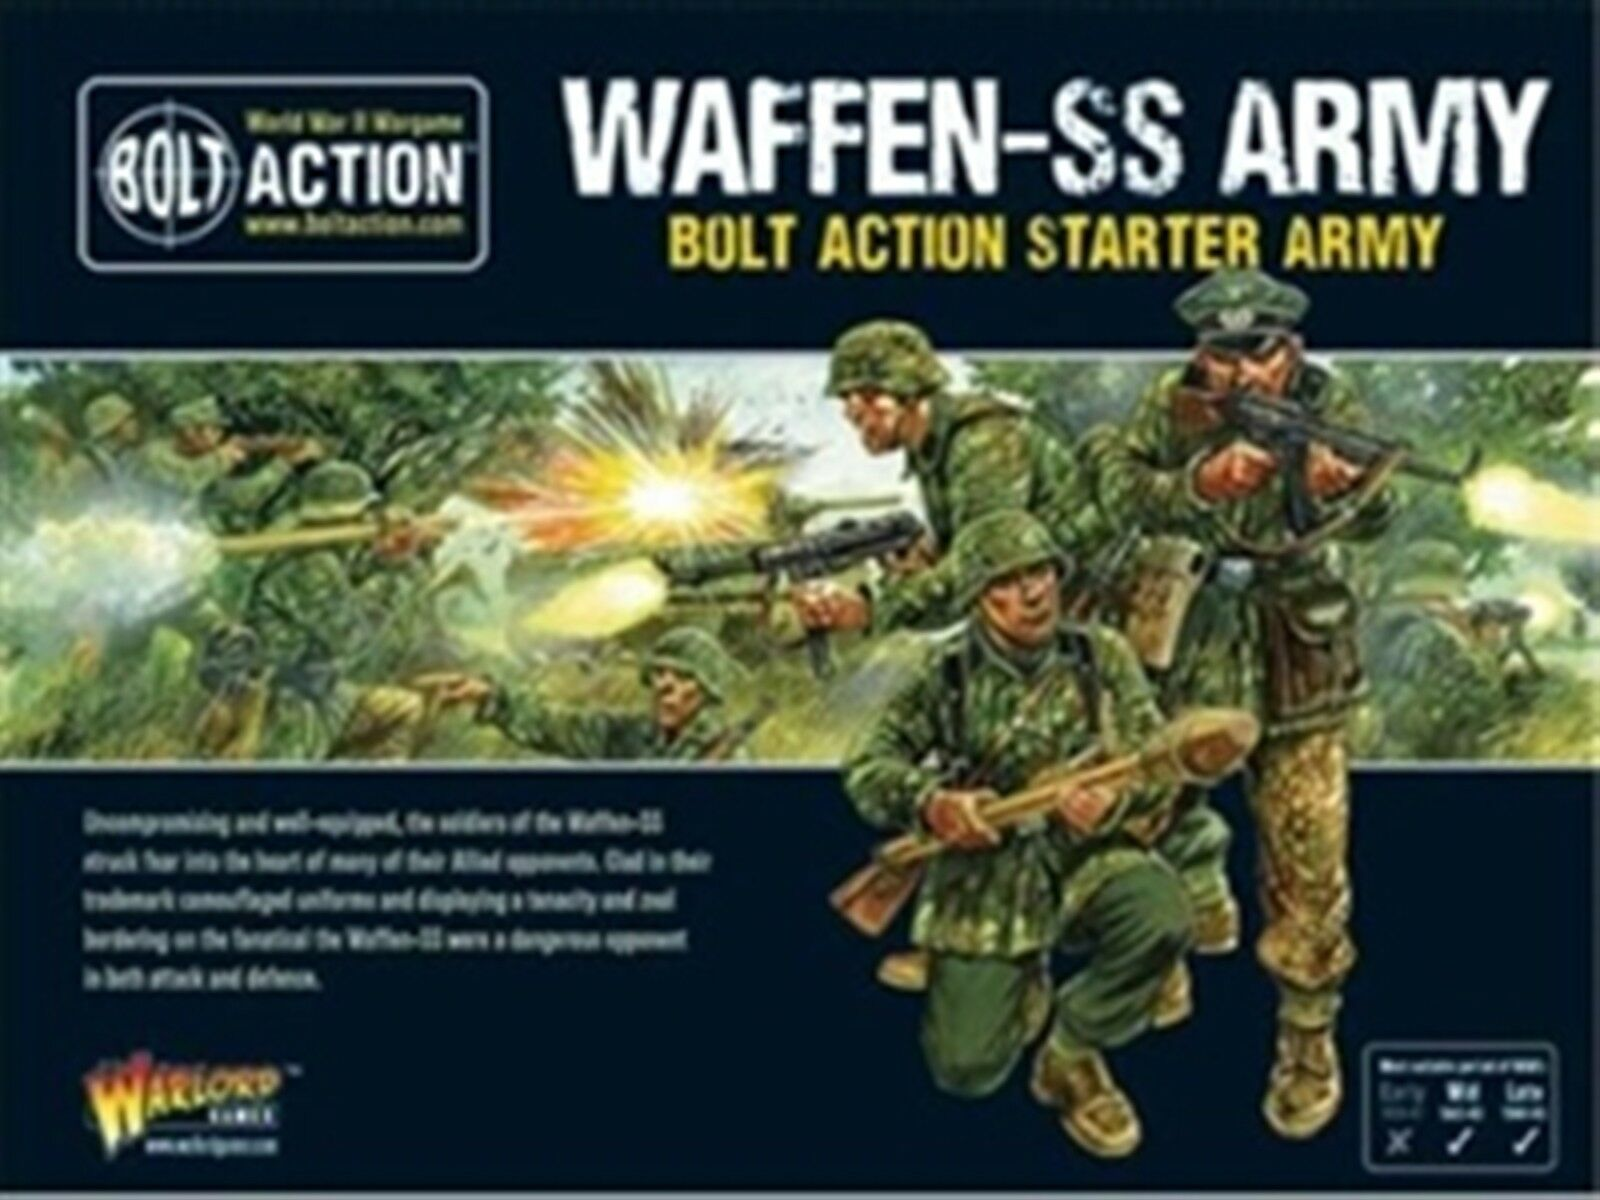 NYA BOLT -HANDLINGSFRIMINATURER 1500PTS GERMAN WAFFEN -SS STkonstER KRITERIER 402612101